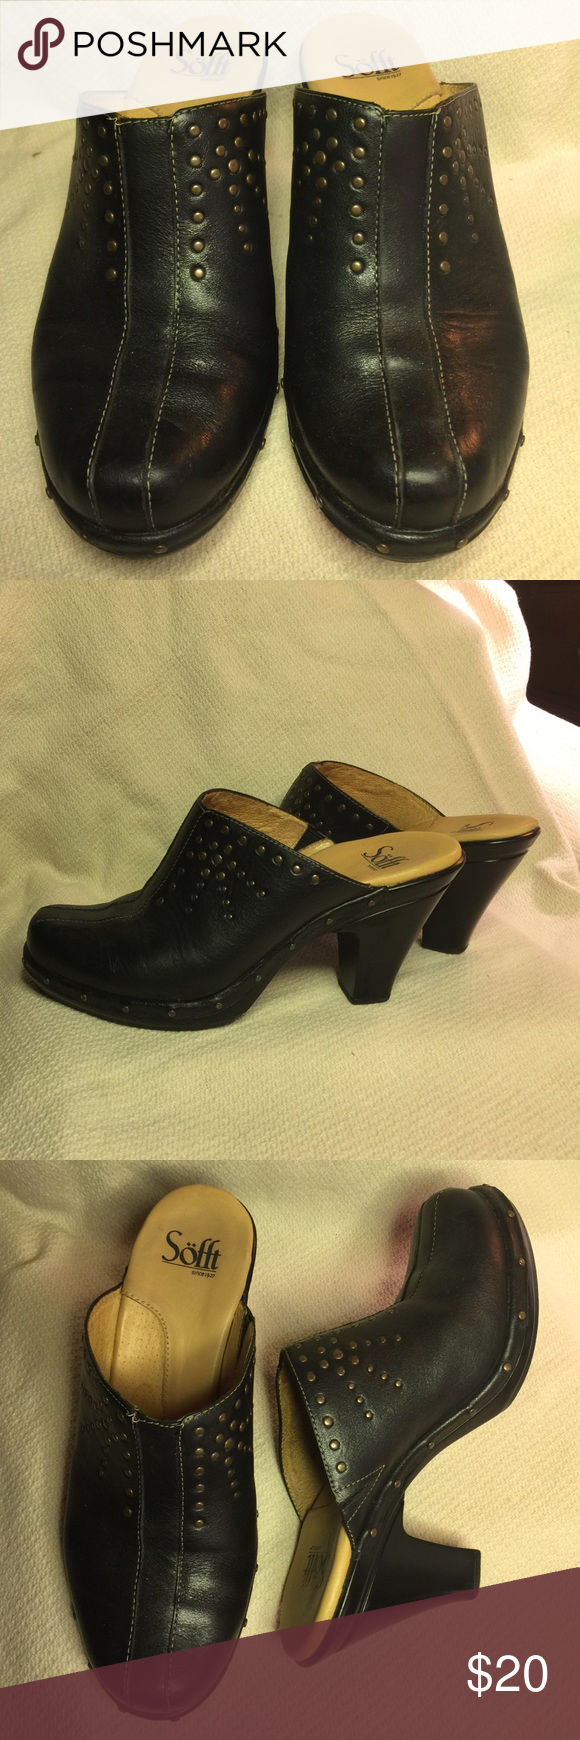 Black Leather Mules / Clogs by Sofft, 7.5M Super comfy. Elegant yet casual design with metal stud detail offering just the right amount of edge. Size 7.5M and would fit a size 8M also.  Very gently walked condition. Sexy and comfortable. Sofft Shoes Mules & Clogs